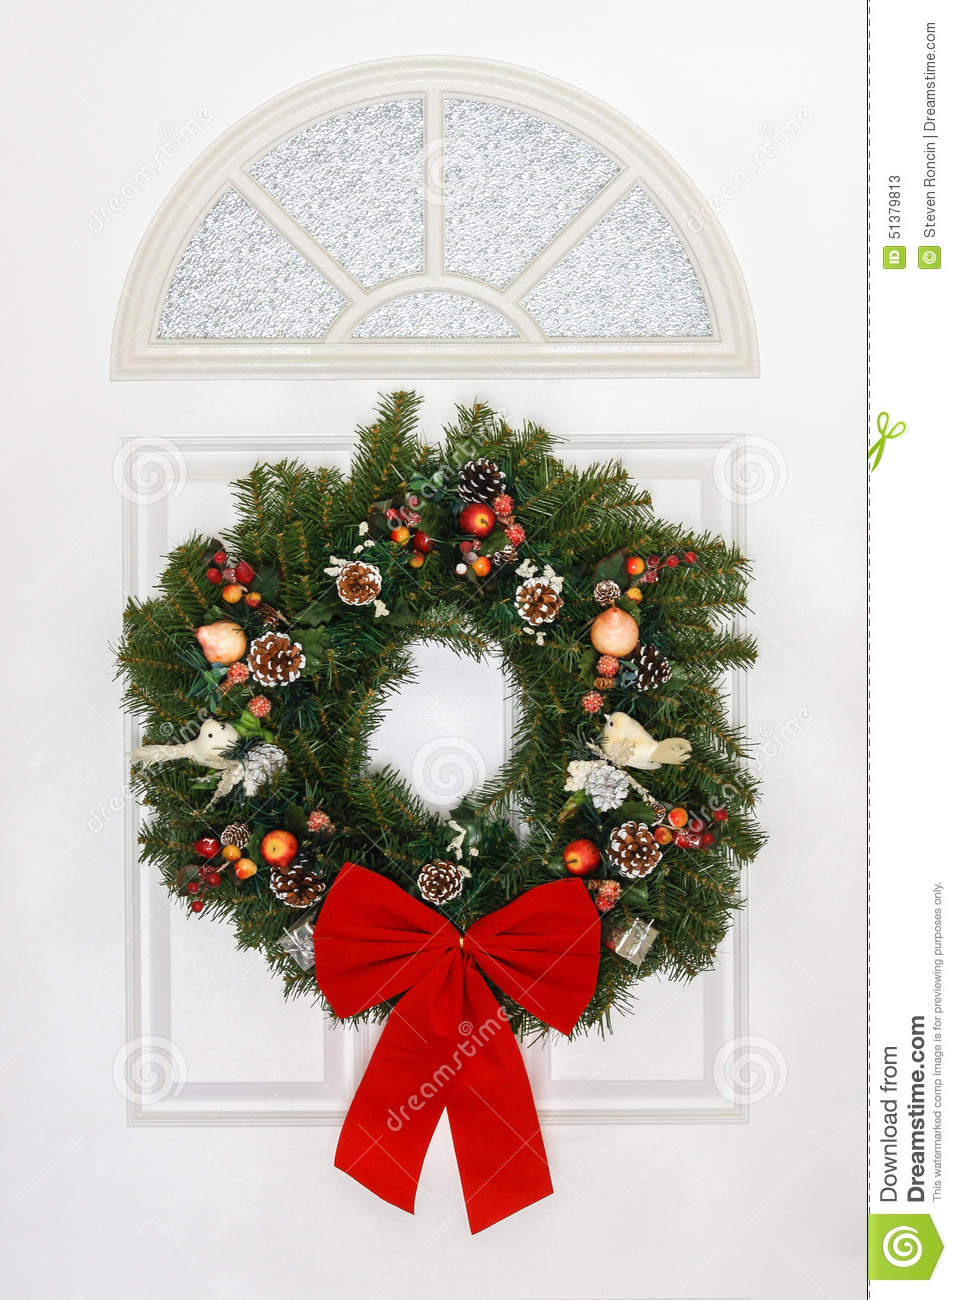 Le Meilleur Pine Christmas Wreath With Red Bow Hanging On White Door Ce Mois Ci